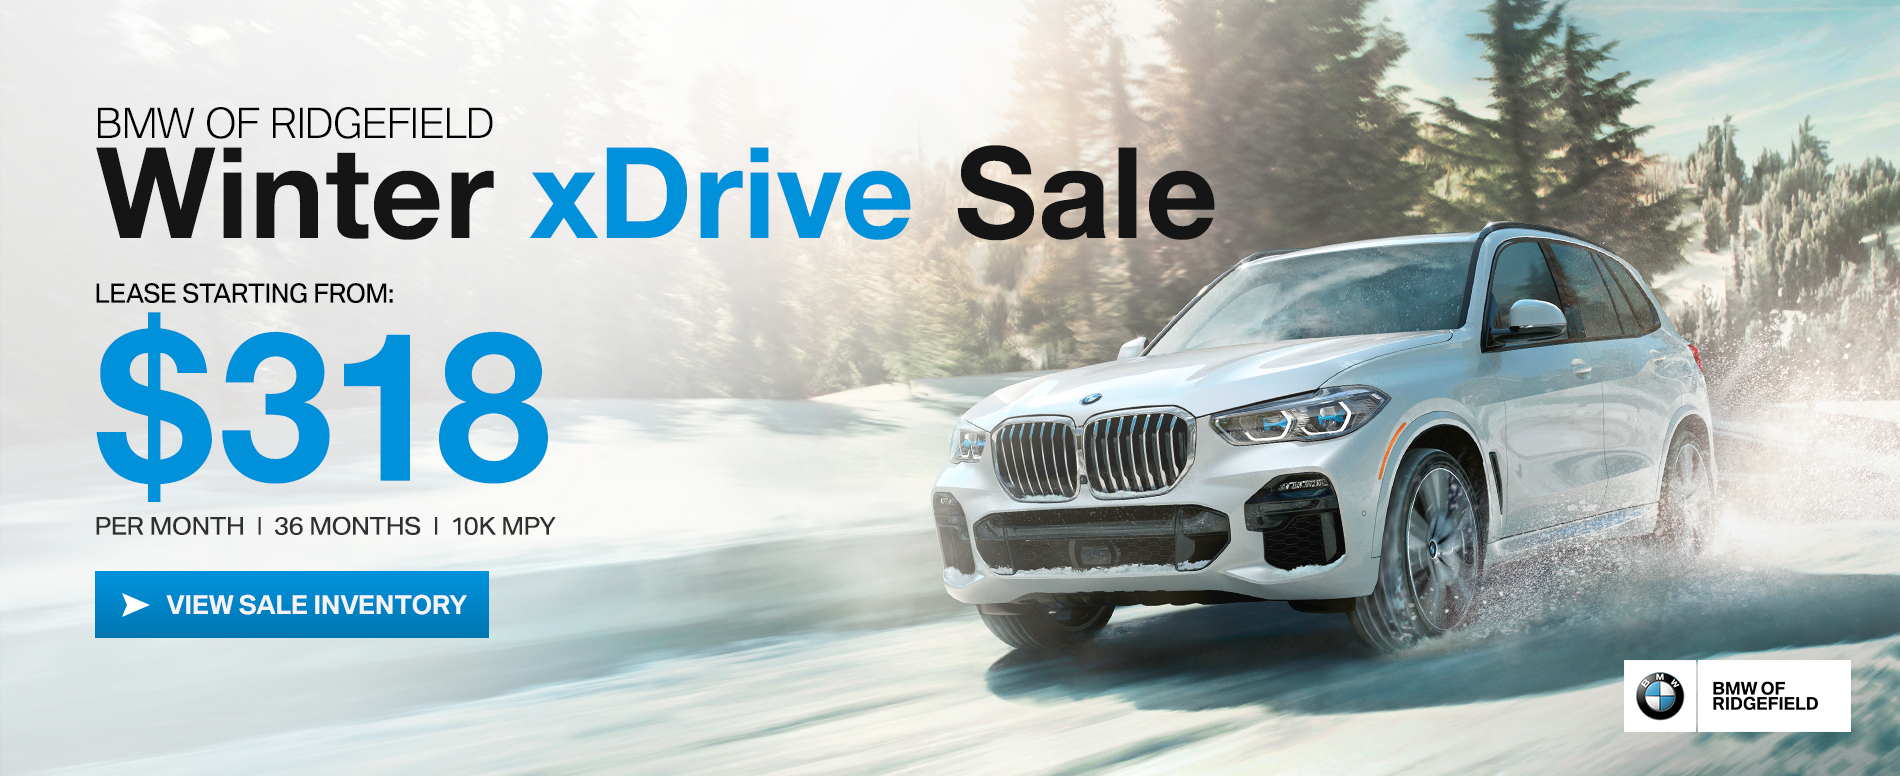 Bmw Of Ridgefield Bmw Dealer Used Car Dealer In Ridgefield Ct